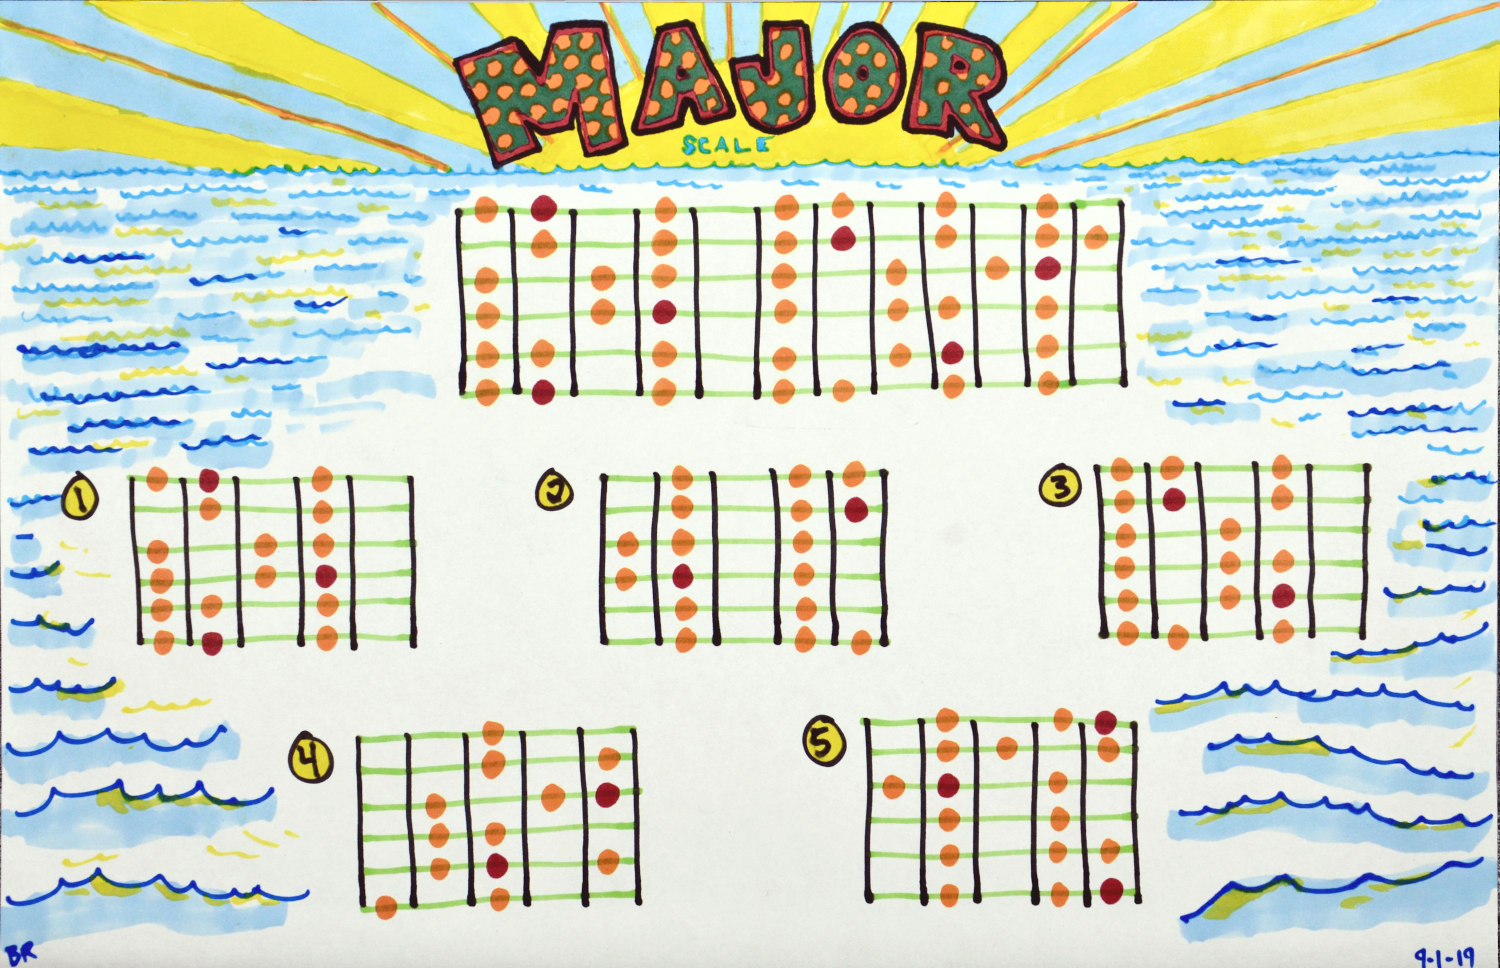 Major Scale guitar scale drawing, by Billy Reiter